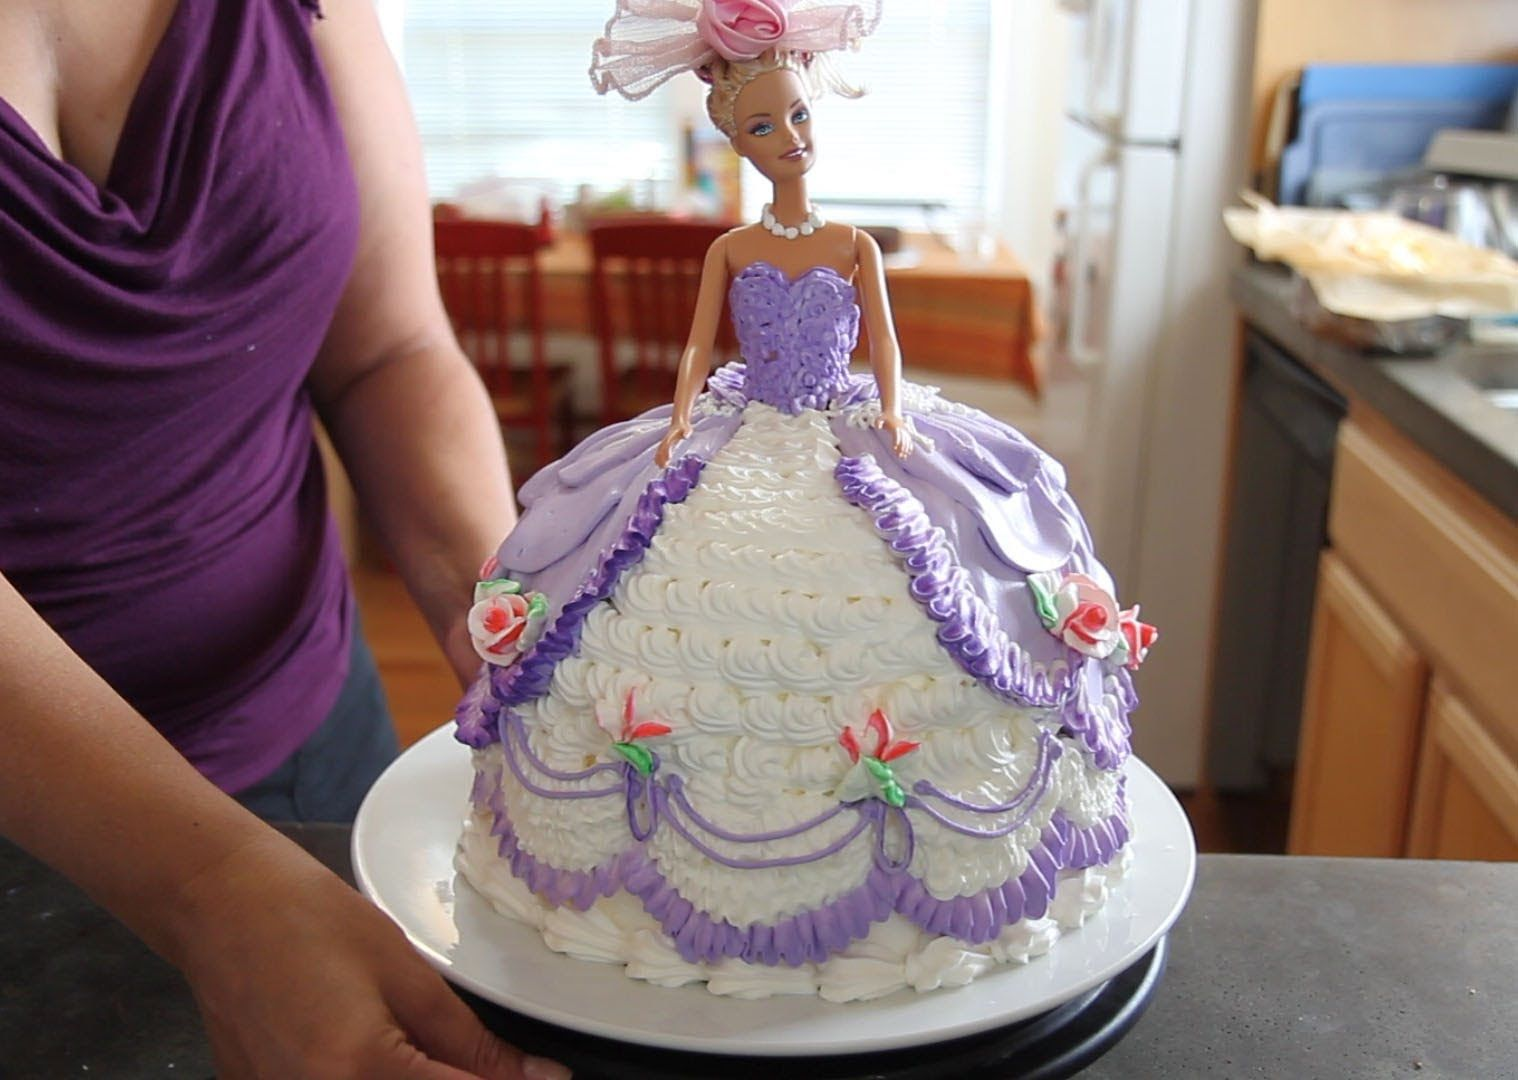 Icing decorating cakes video